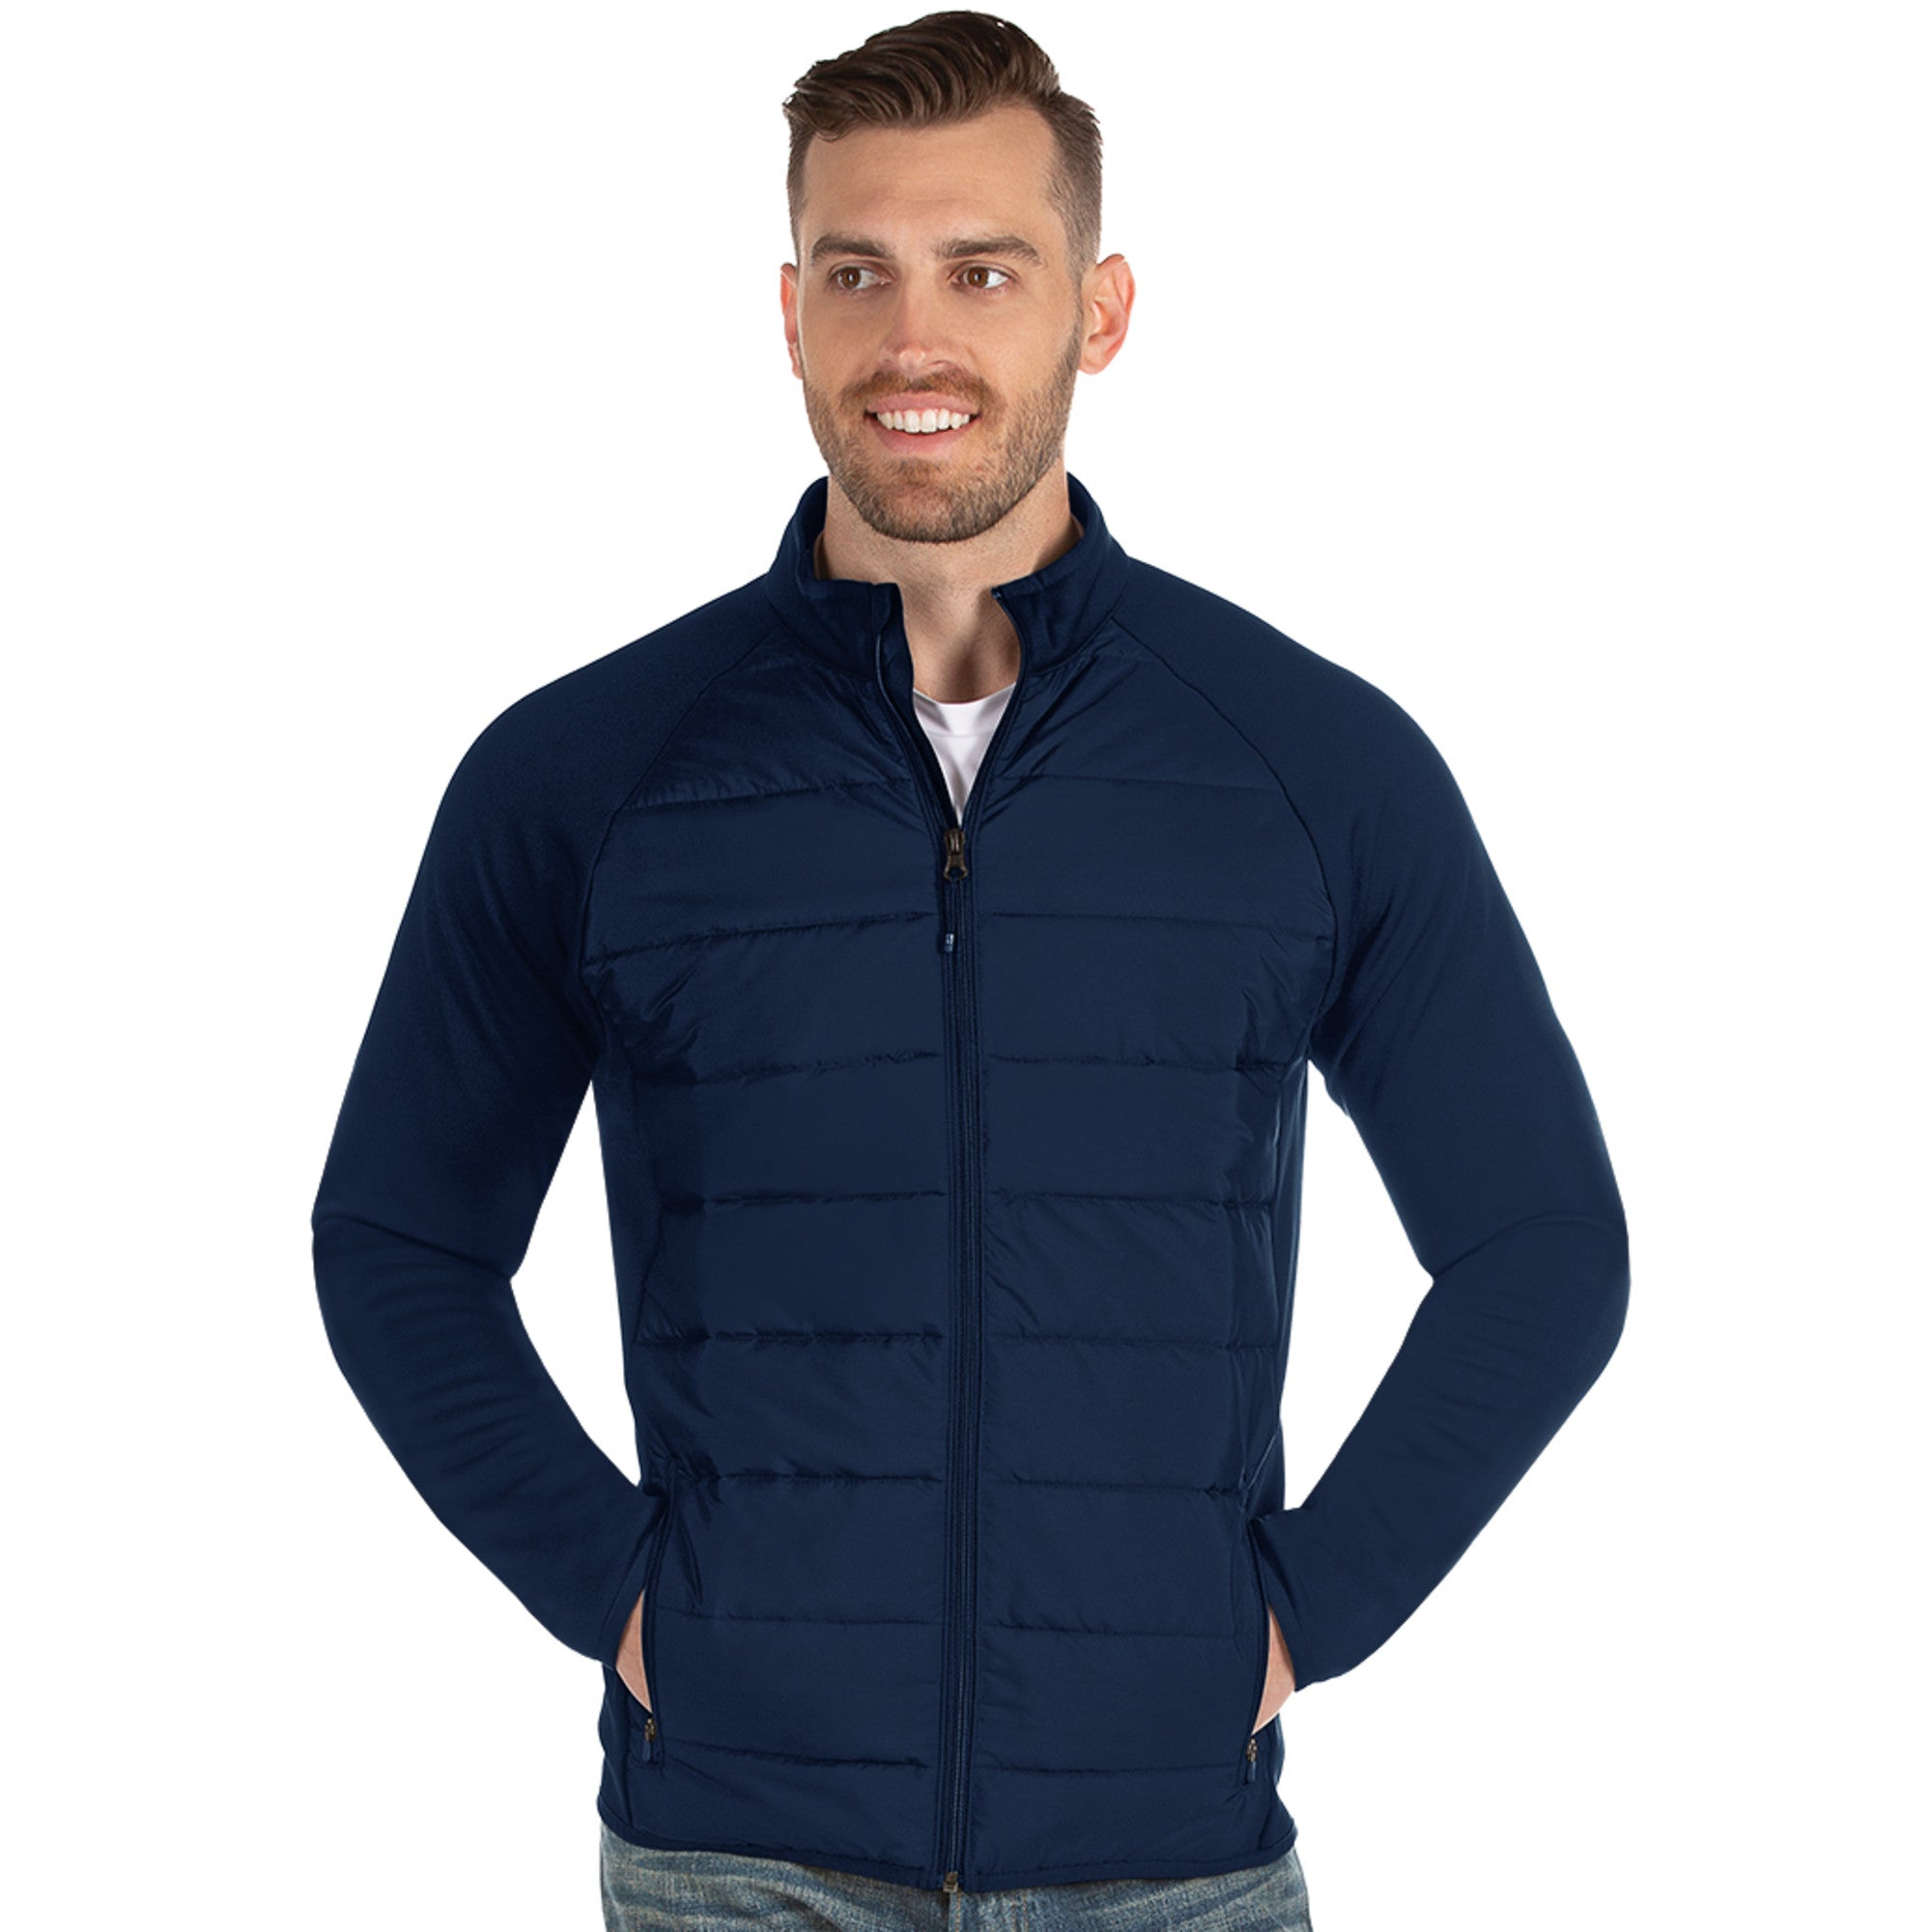 Antigua Men's Altitude Jacket - A104340